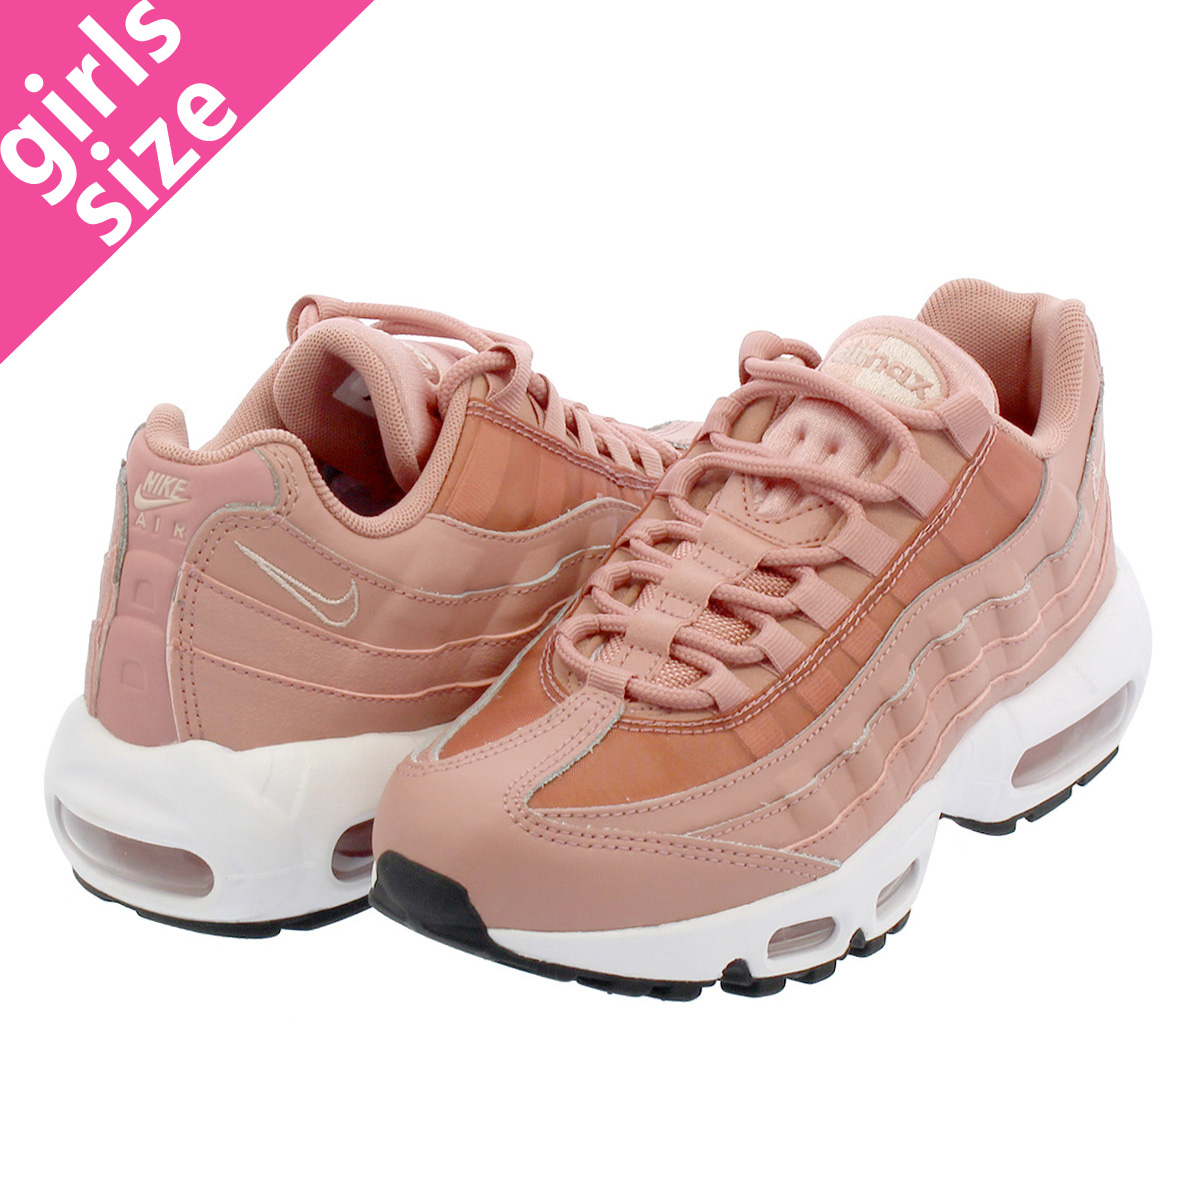 promo code 68e38 4c3cd NIKE WMNS AIR MAX 95 Nike women Air Max 95 RUST PINK BLACK WHITE PARTICLE  BEIGE 307,960-606